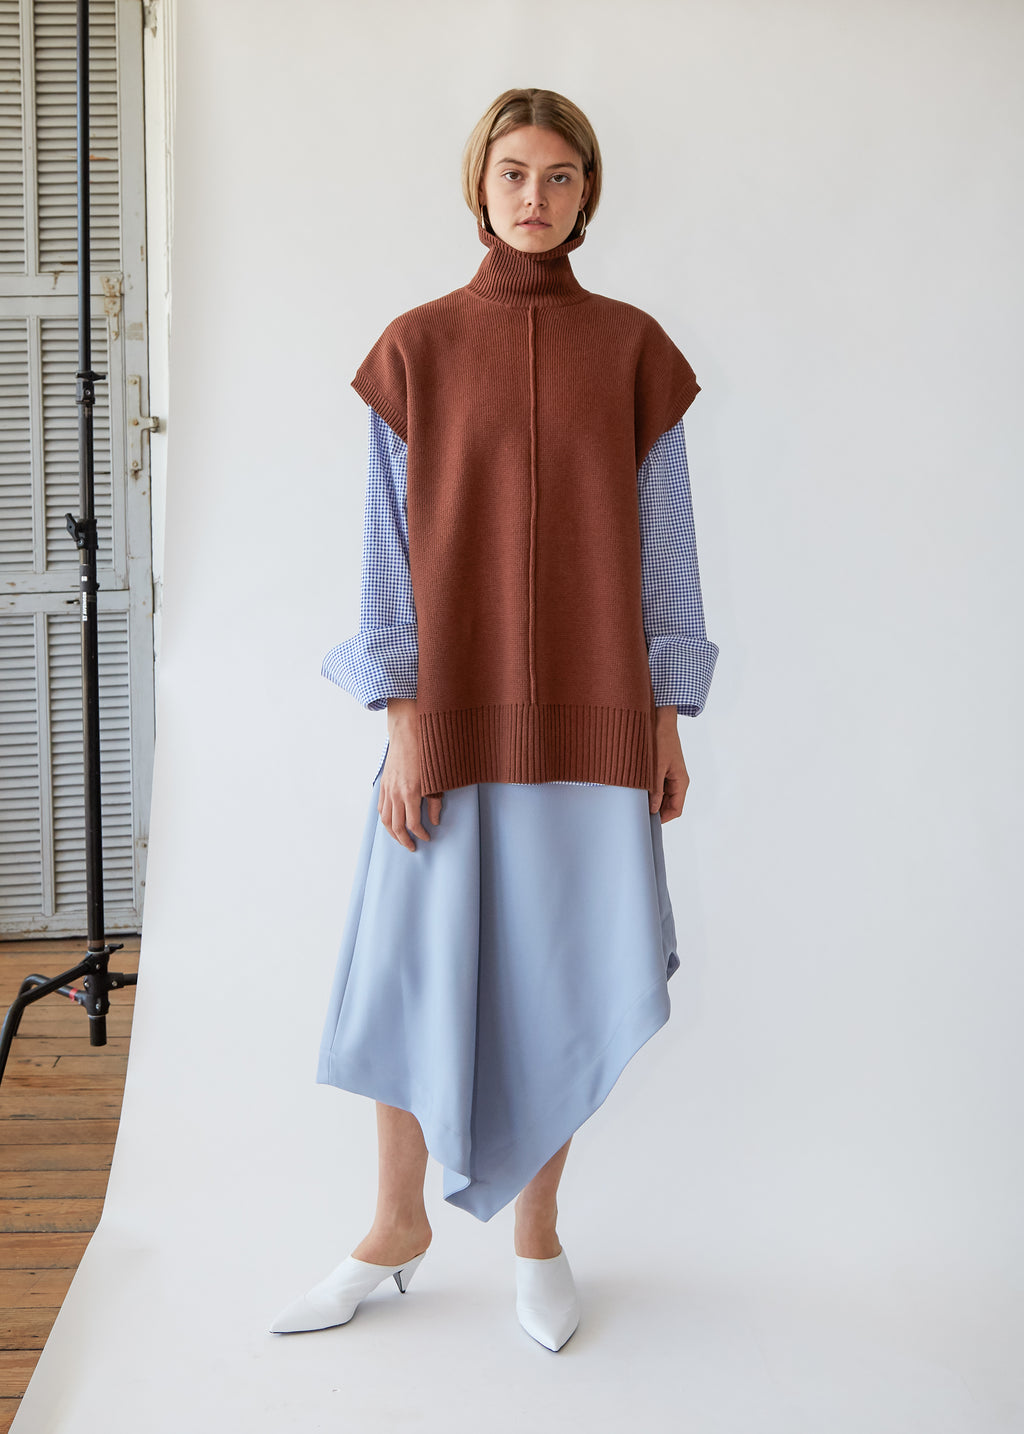 Sleeveless Seam Turtleneck in Nutmeg